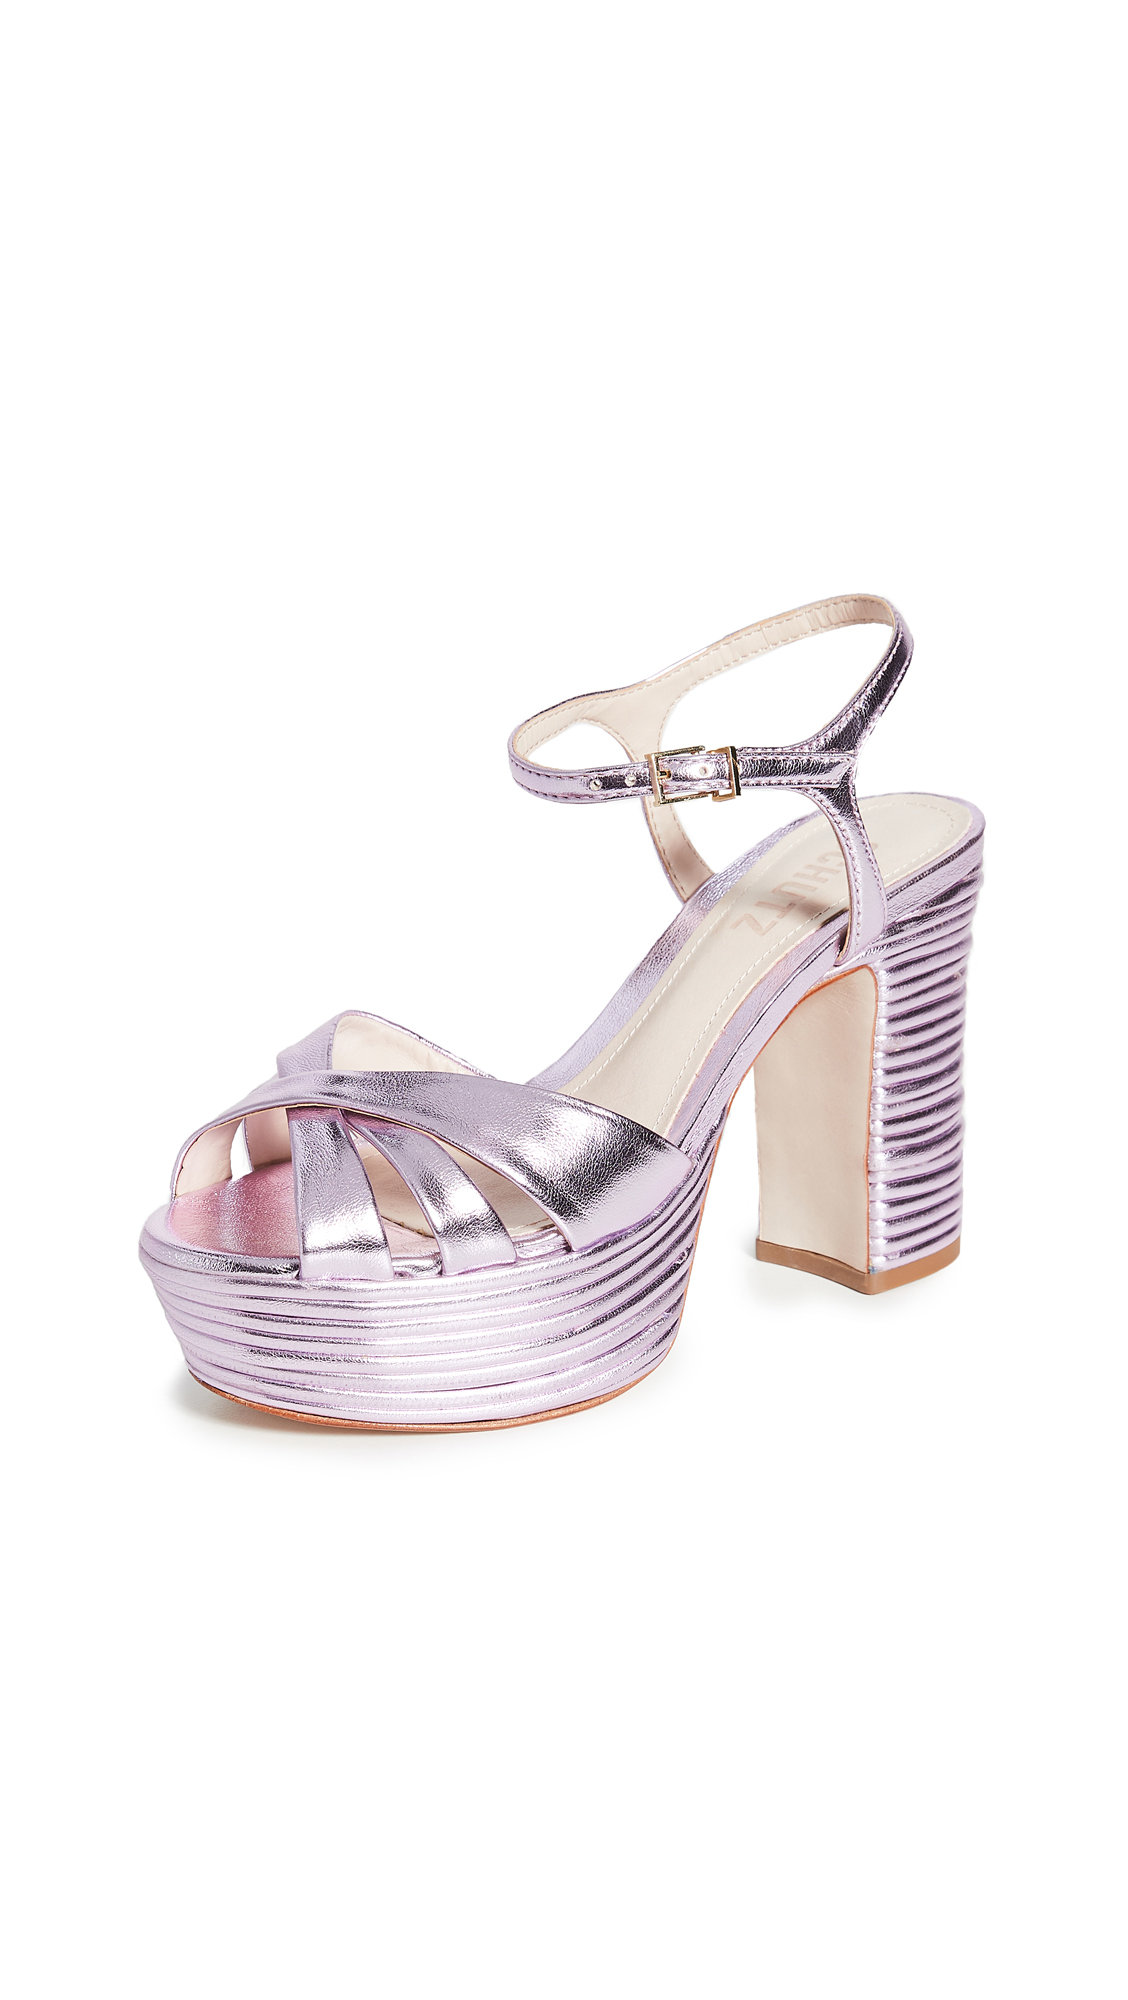 Schutz Darilia Sandals - 40% Off Sale